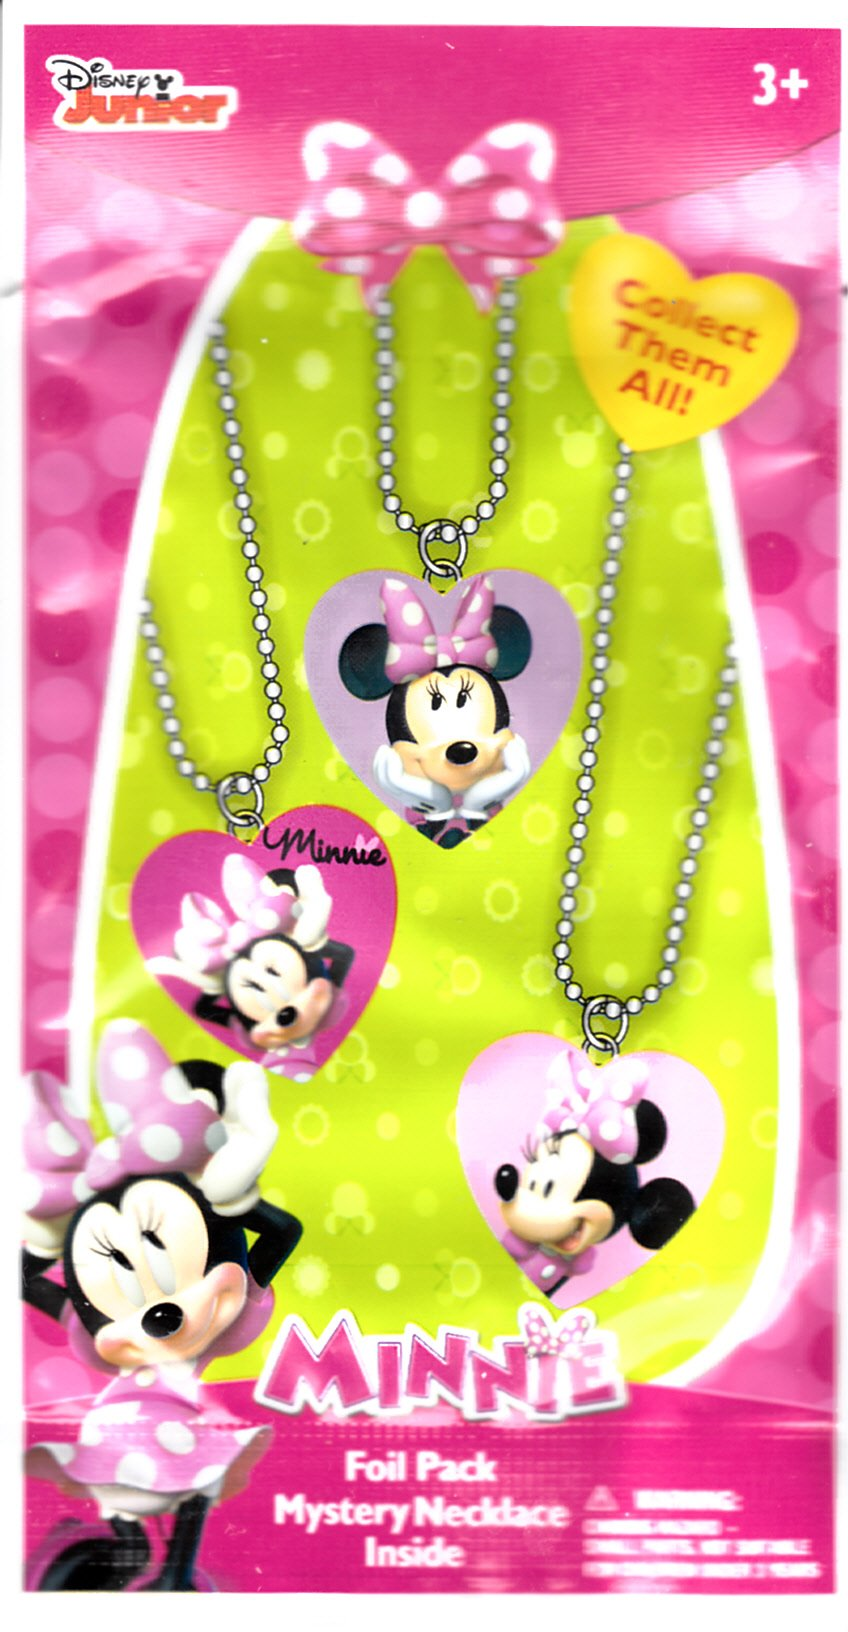 Disney Junior Minnie Mouse Mystery Necklace Blind Foil Pack